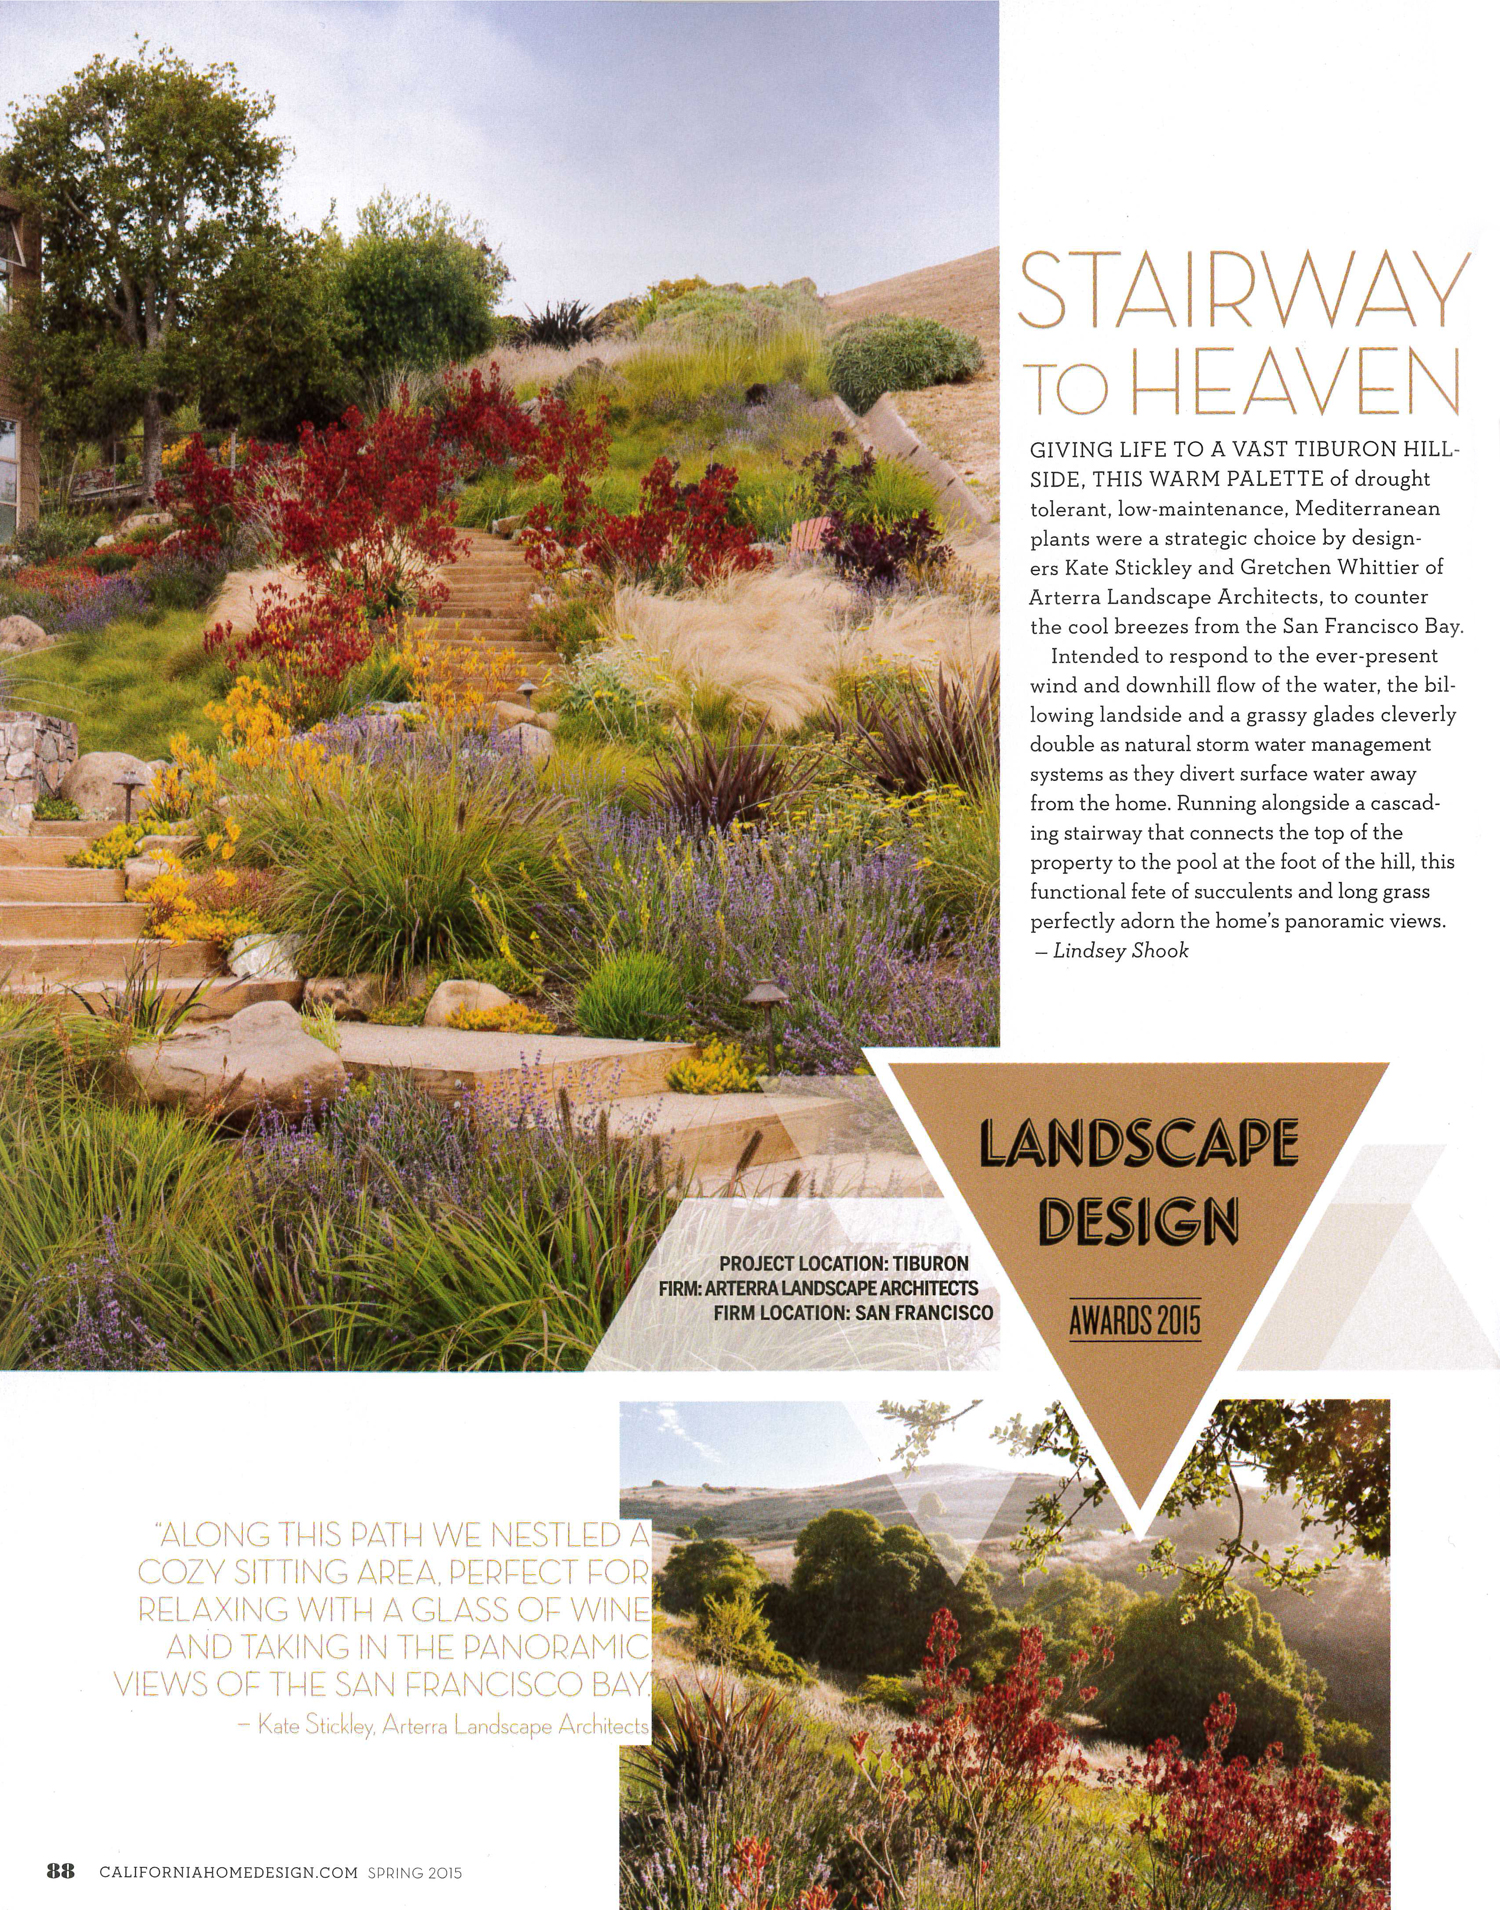 California Home + Design awarded The Painterly Approach their Best Landscape Design Award in 2015.